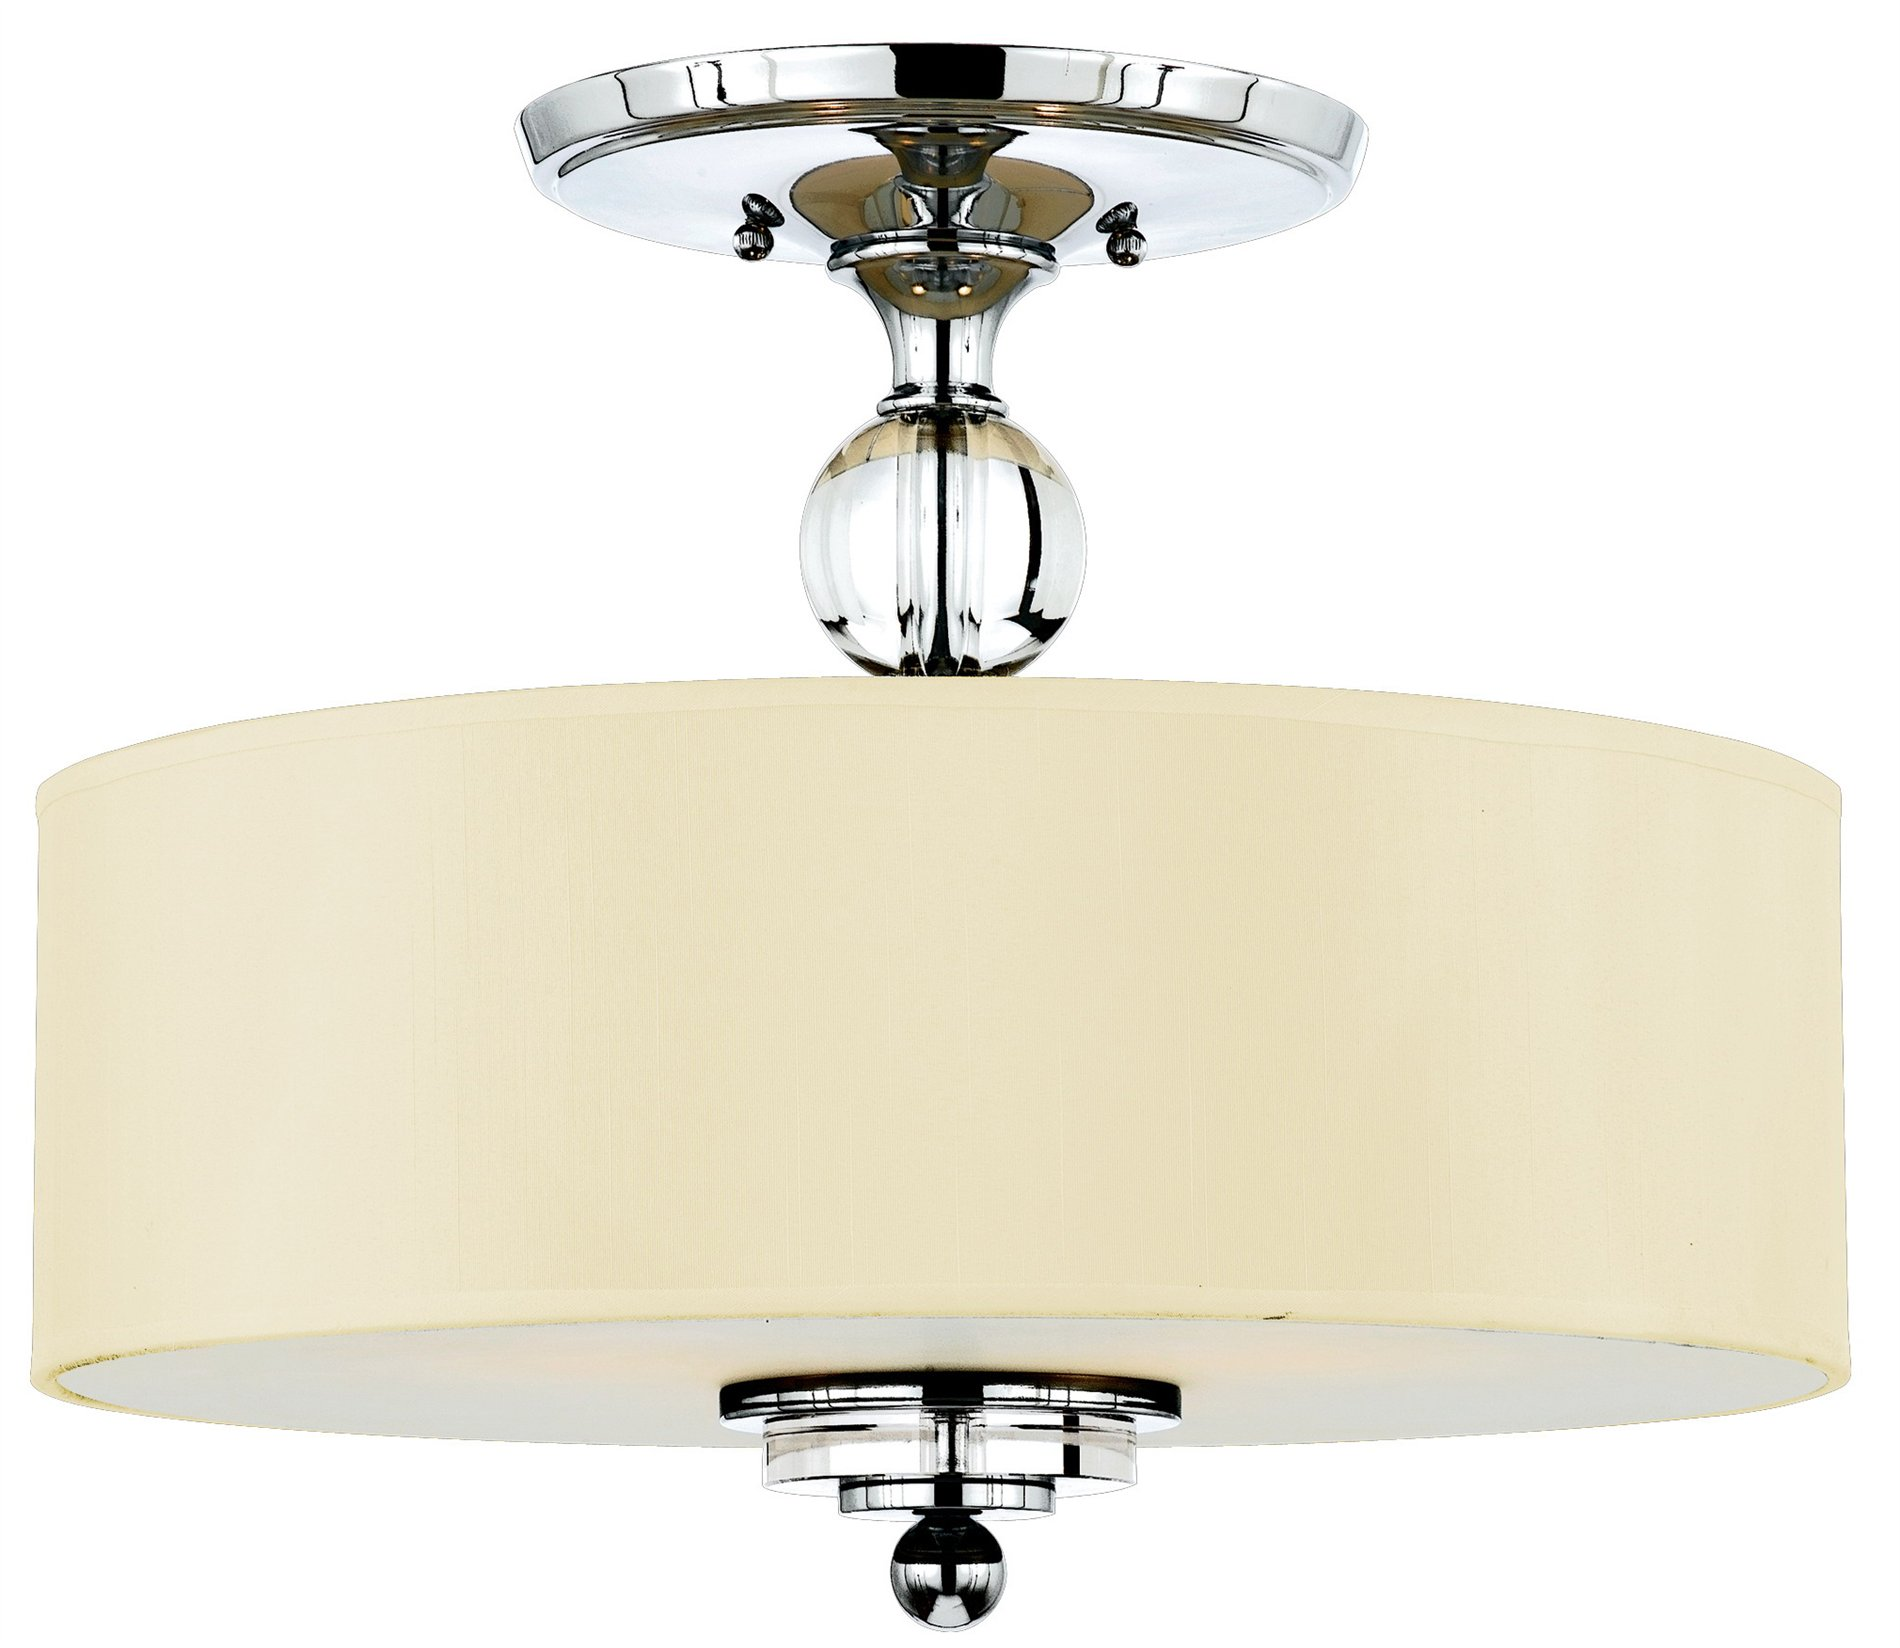 contemporary semi flush mount ceiling light qz dw1717c see details. Black Bedroom Furniture Sets. Home Design Ideas